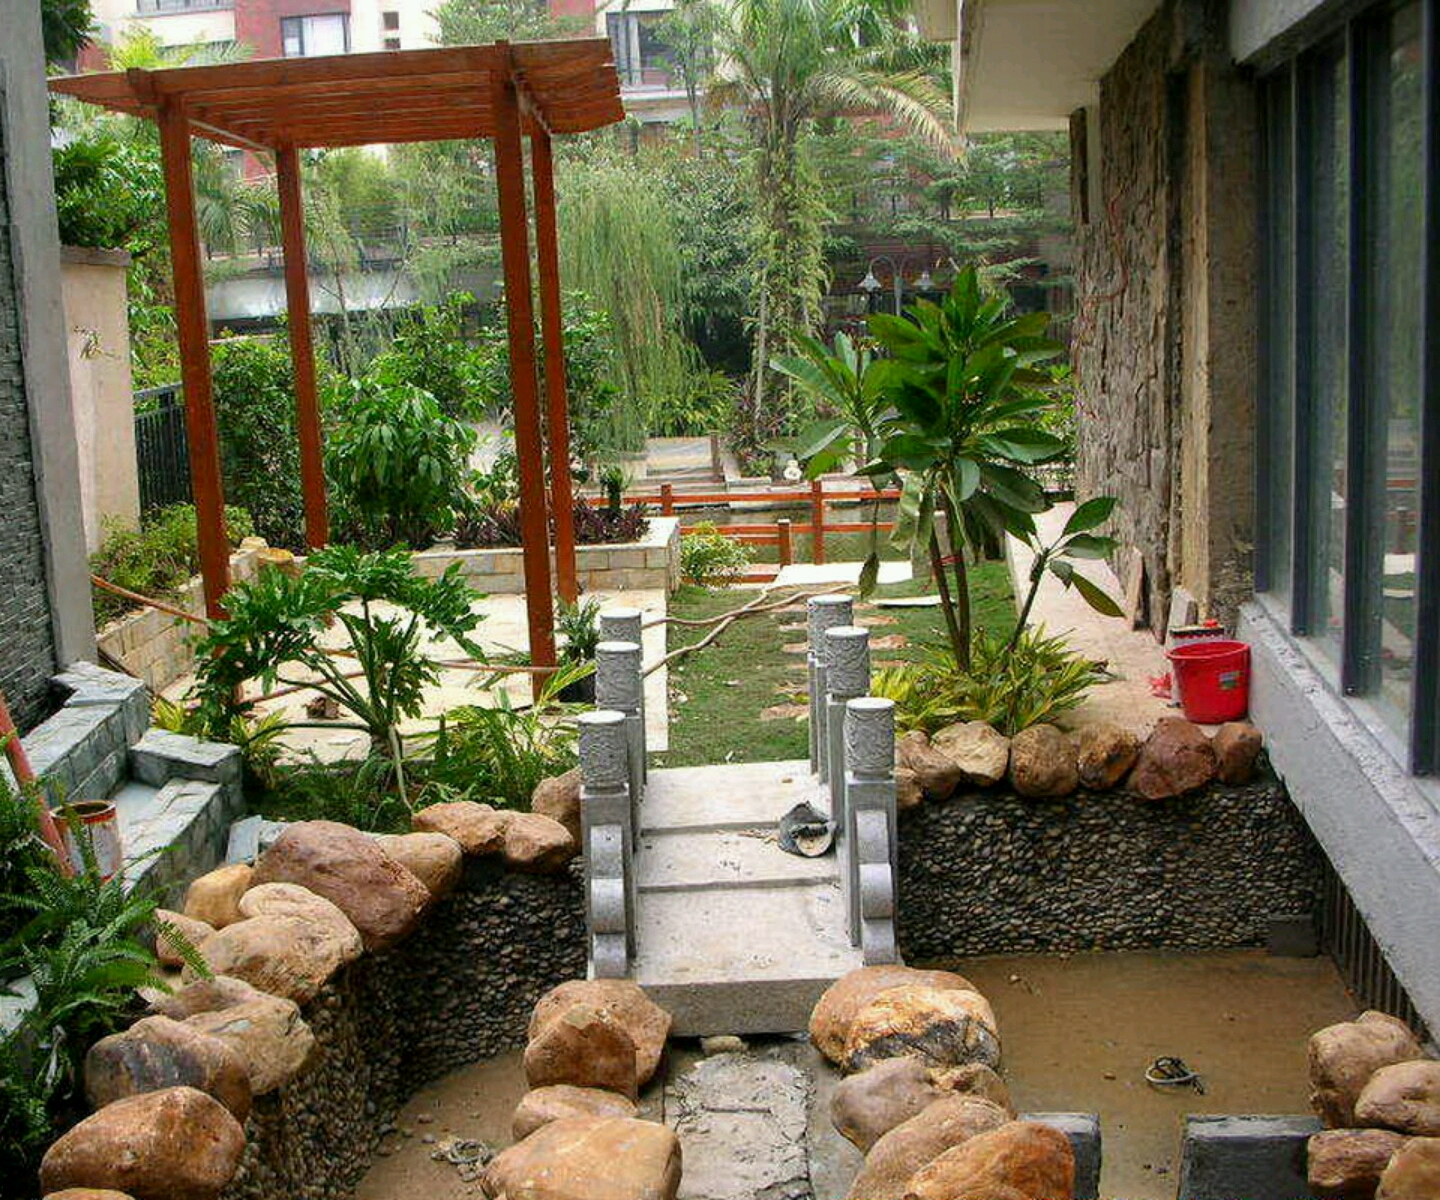 New home designs latest beautiful home gardens designs for Ideas for home gardens design